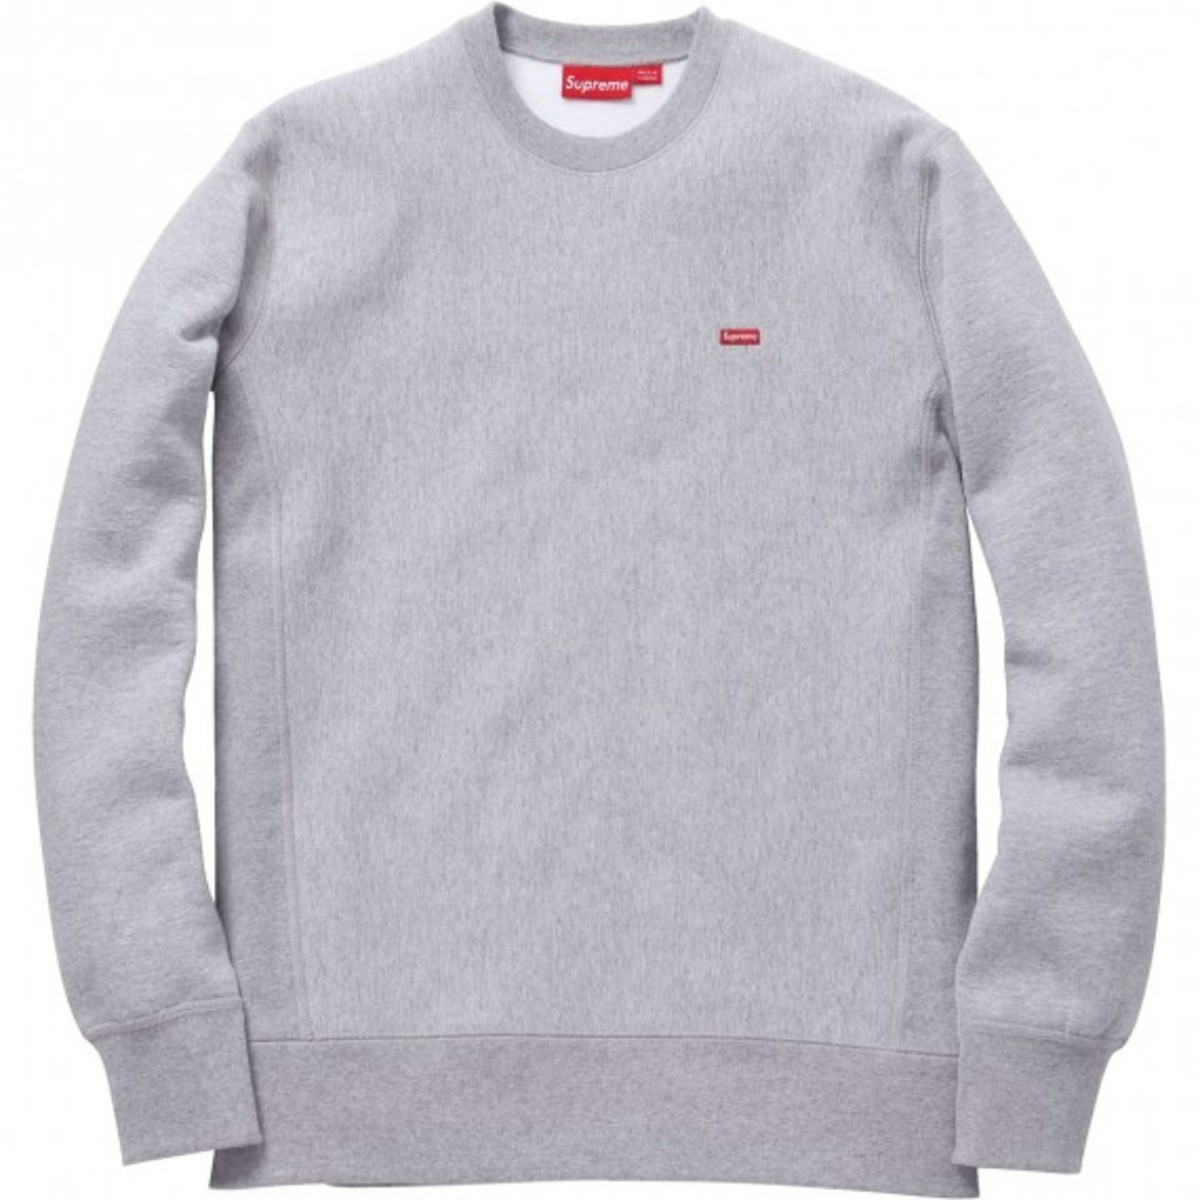 supreme-fall-winter-2011-collection-available-now-07